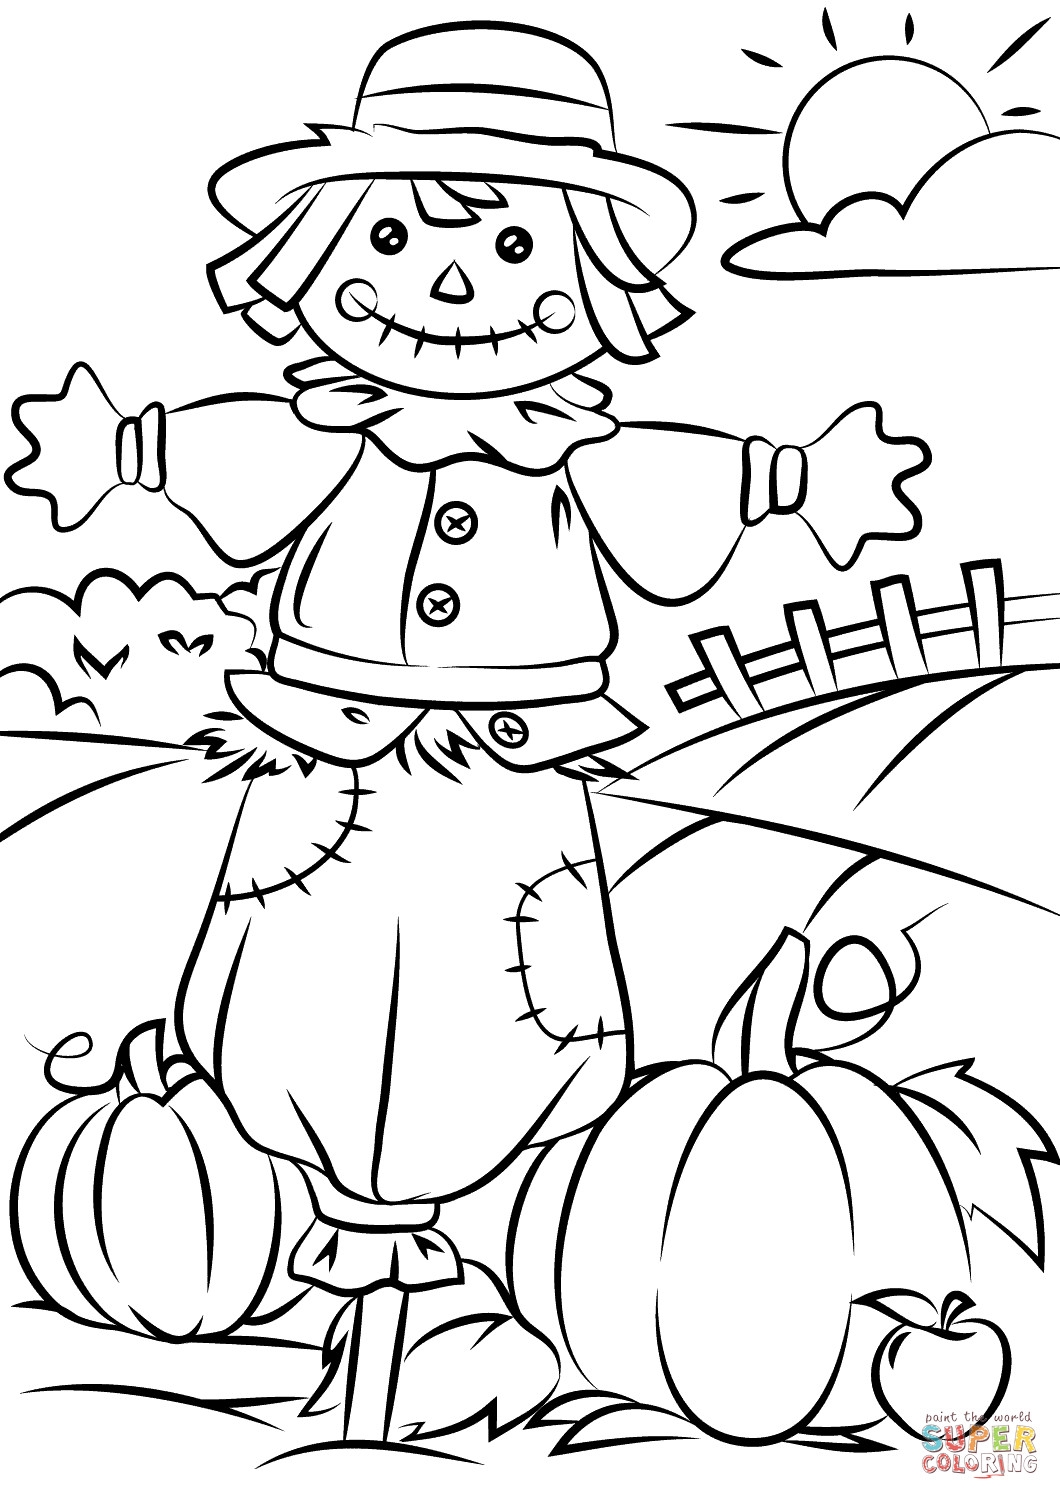 Best ideas about Free Printable Fall Coloring Pages For Kids . Save or Pin Autumn Scene with Scarecrow coloring page Now.